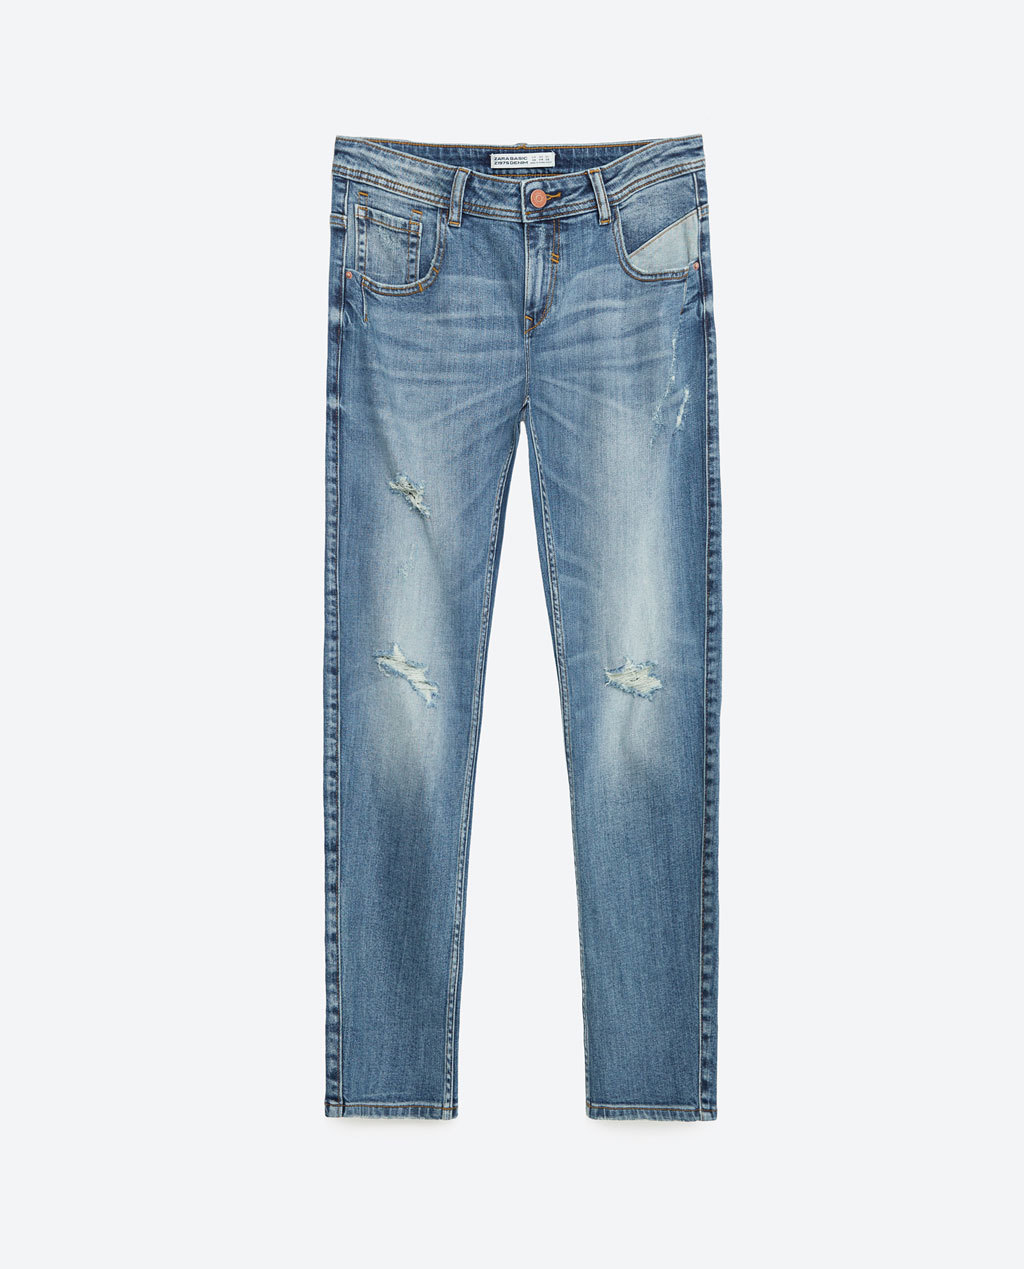 Relax Fit Mid Rise Jeans - length: standard; pattern: plain; pocket detail: traditional 5 pocket; waist: mid/regular rise; style: tapered; predominant colour: denim; occasions: casual; fibres: cotton - stretch; jeans detail: shading down centre of thigh, rips; texture group: denim; pattern type: fabric; season: s/s 2016; wardrobe: basic